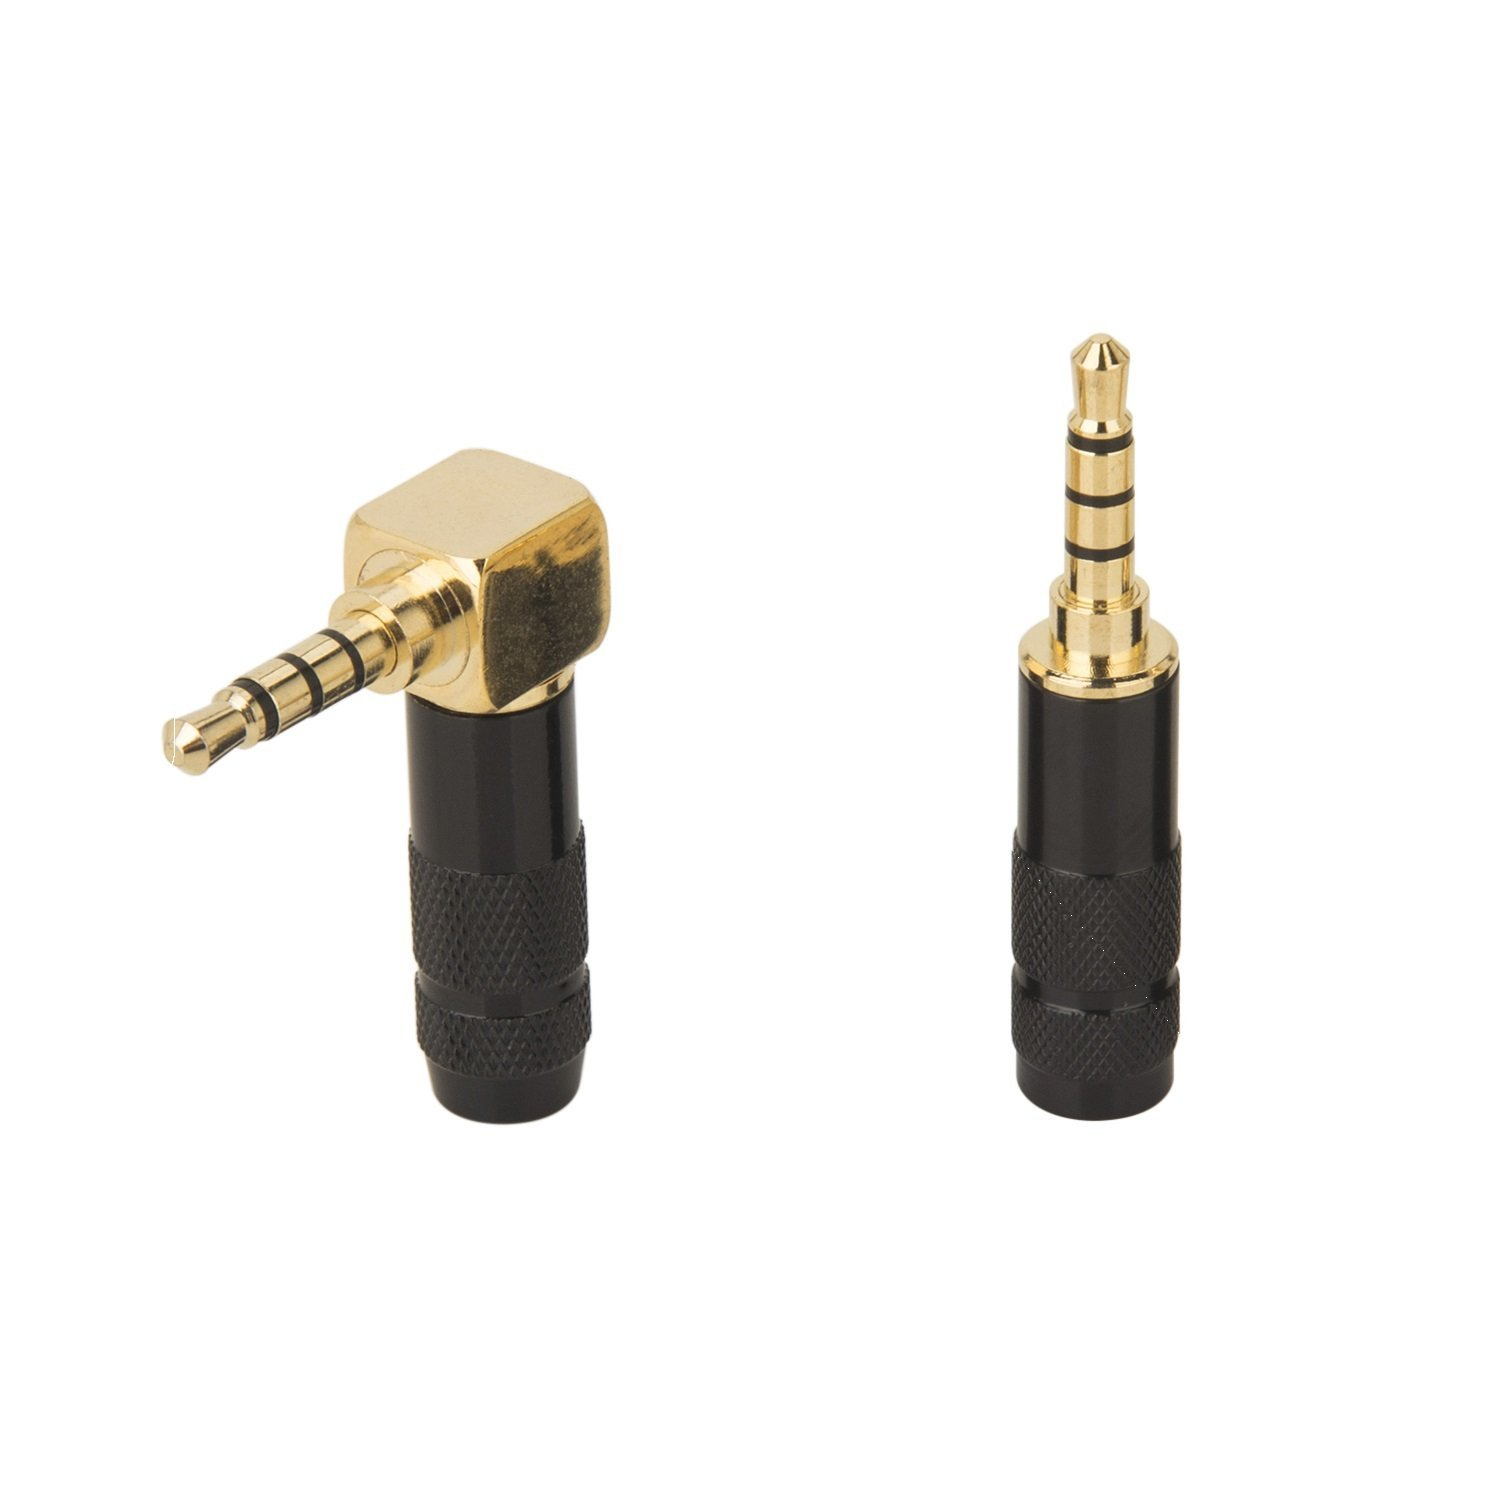 hight resolution of get quotations timibis 2pcs 4 pole 3 5mm barss stereo audio plug jack connector male headphone jack soldering